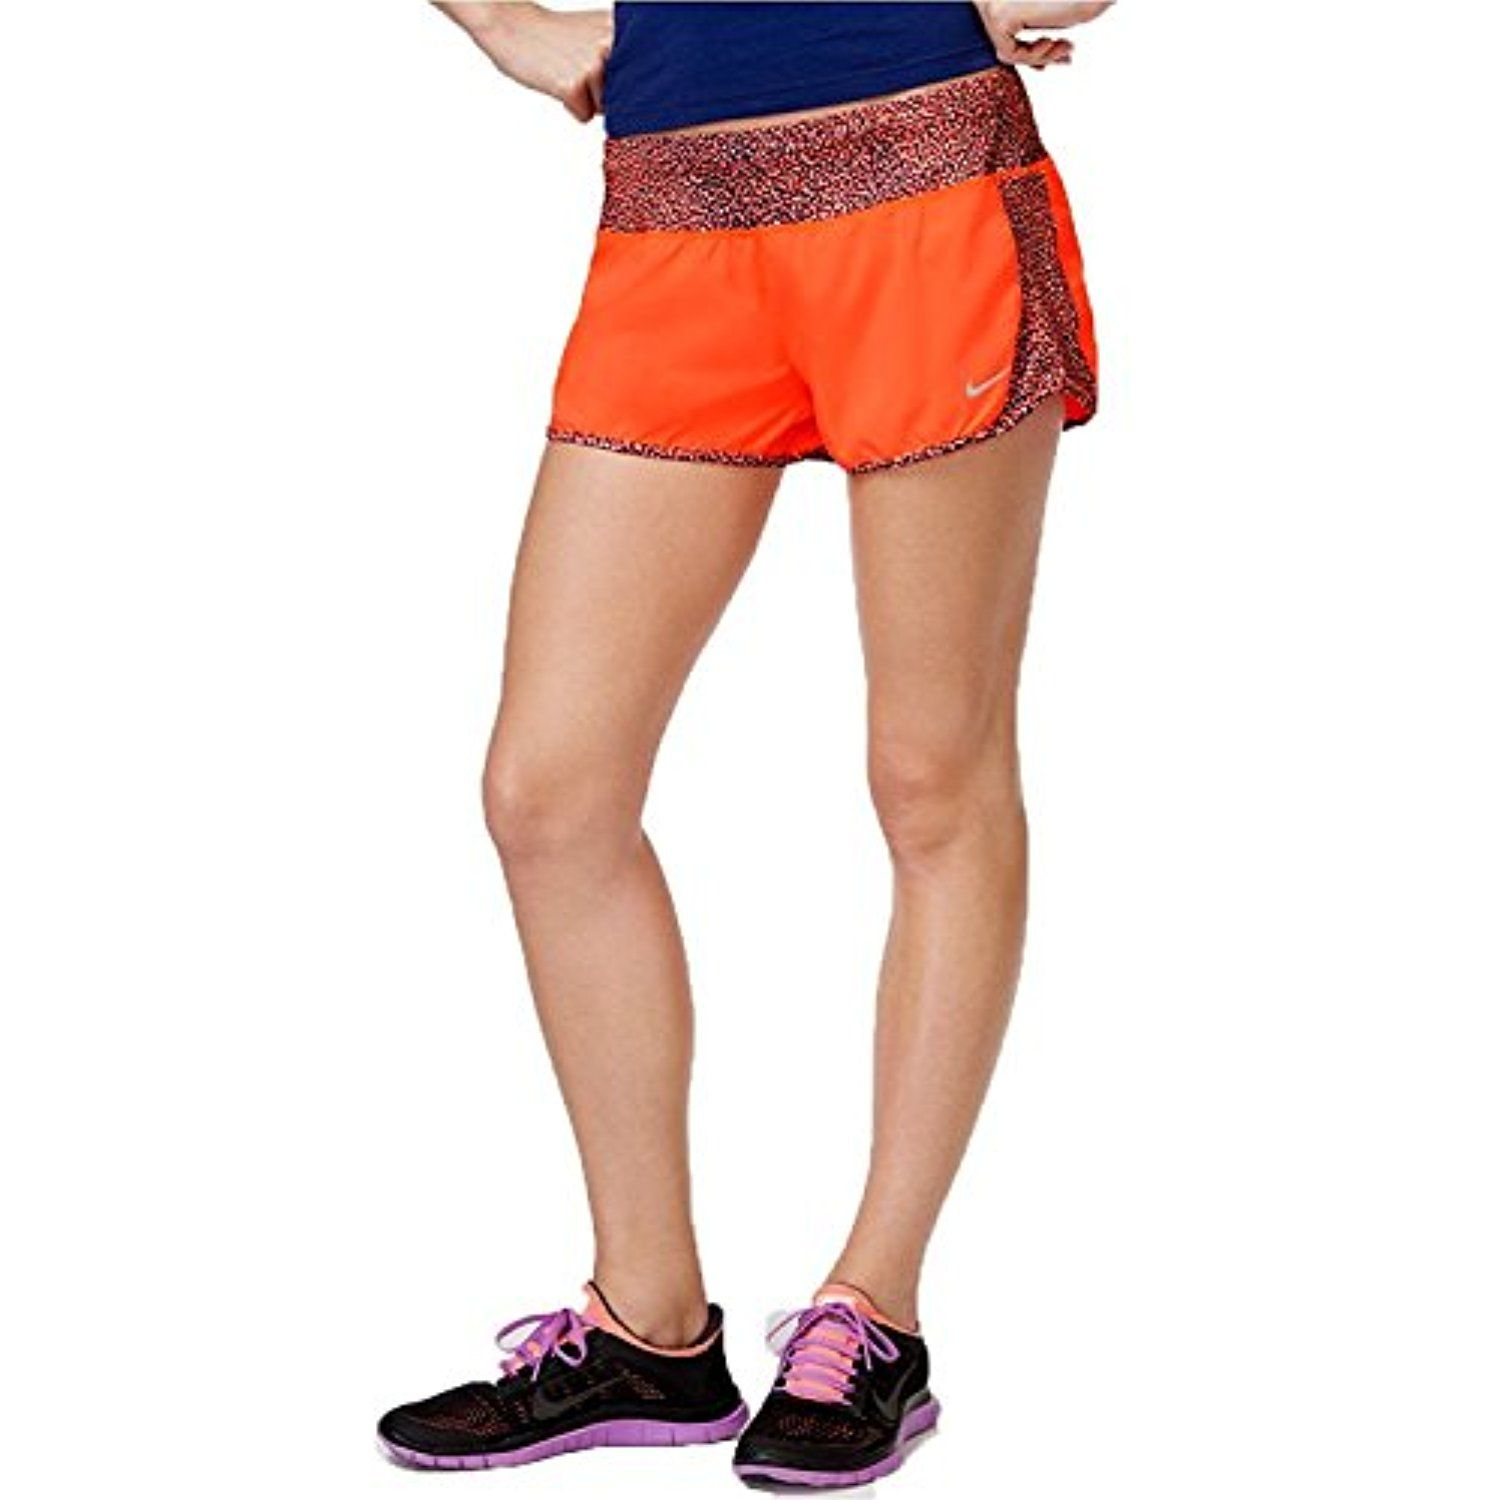 Can Dri Found Shorts Fit Details Printed Nike By Be Womens wAOxY